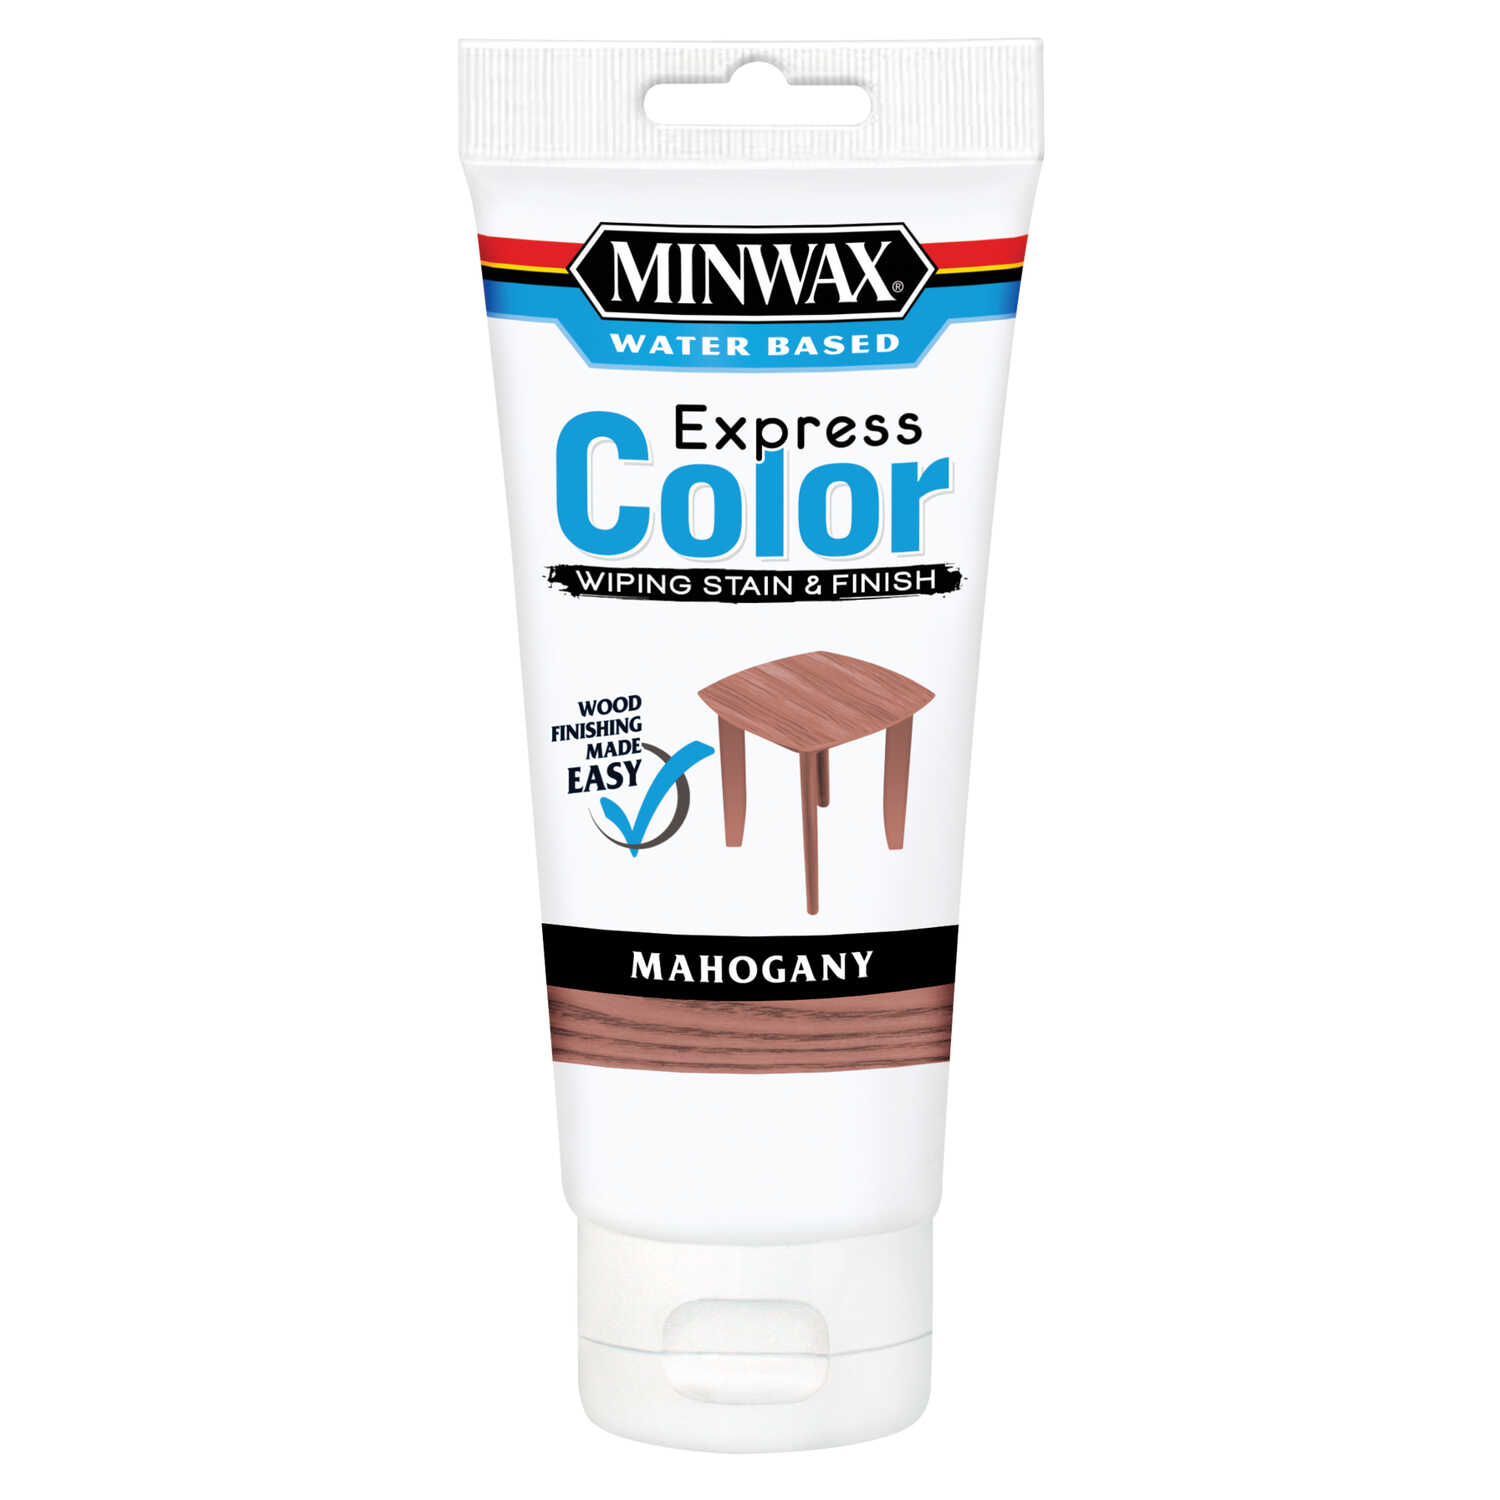 Minwax  Express Color  Semi-Transparent  Mahogany  Water-Based  Acrylic  Wiping Stain and Finish  6